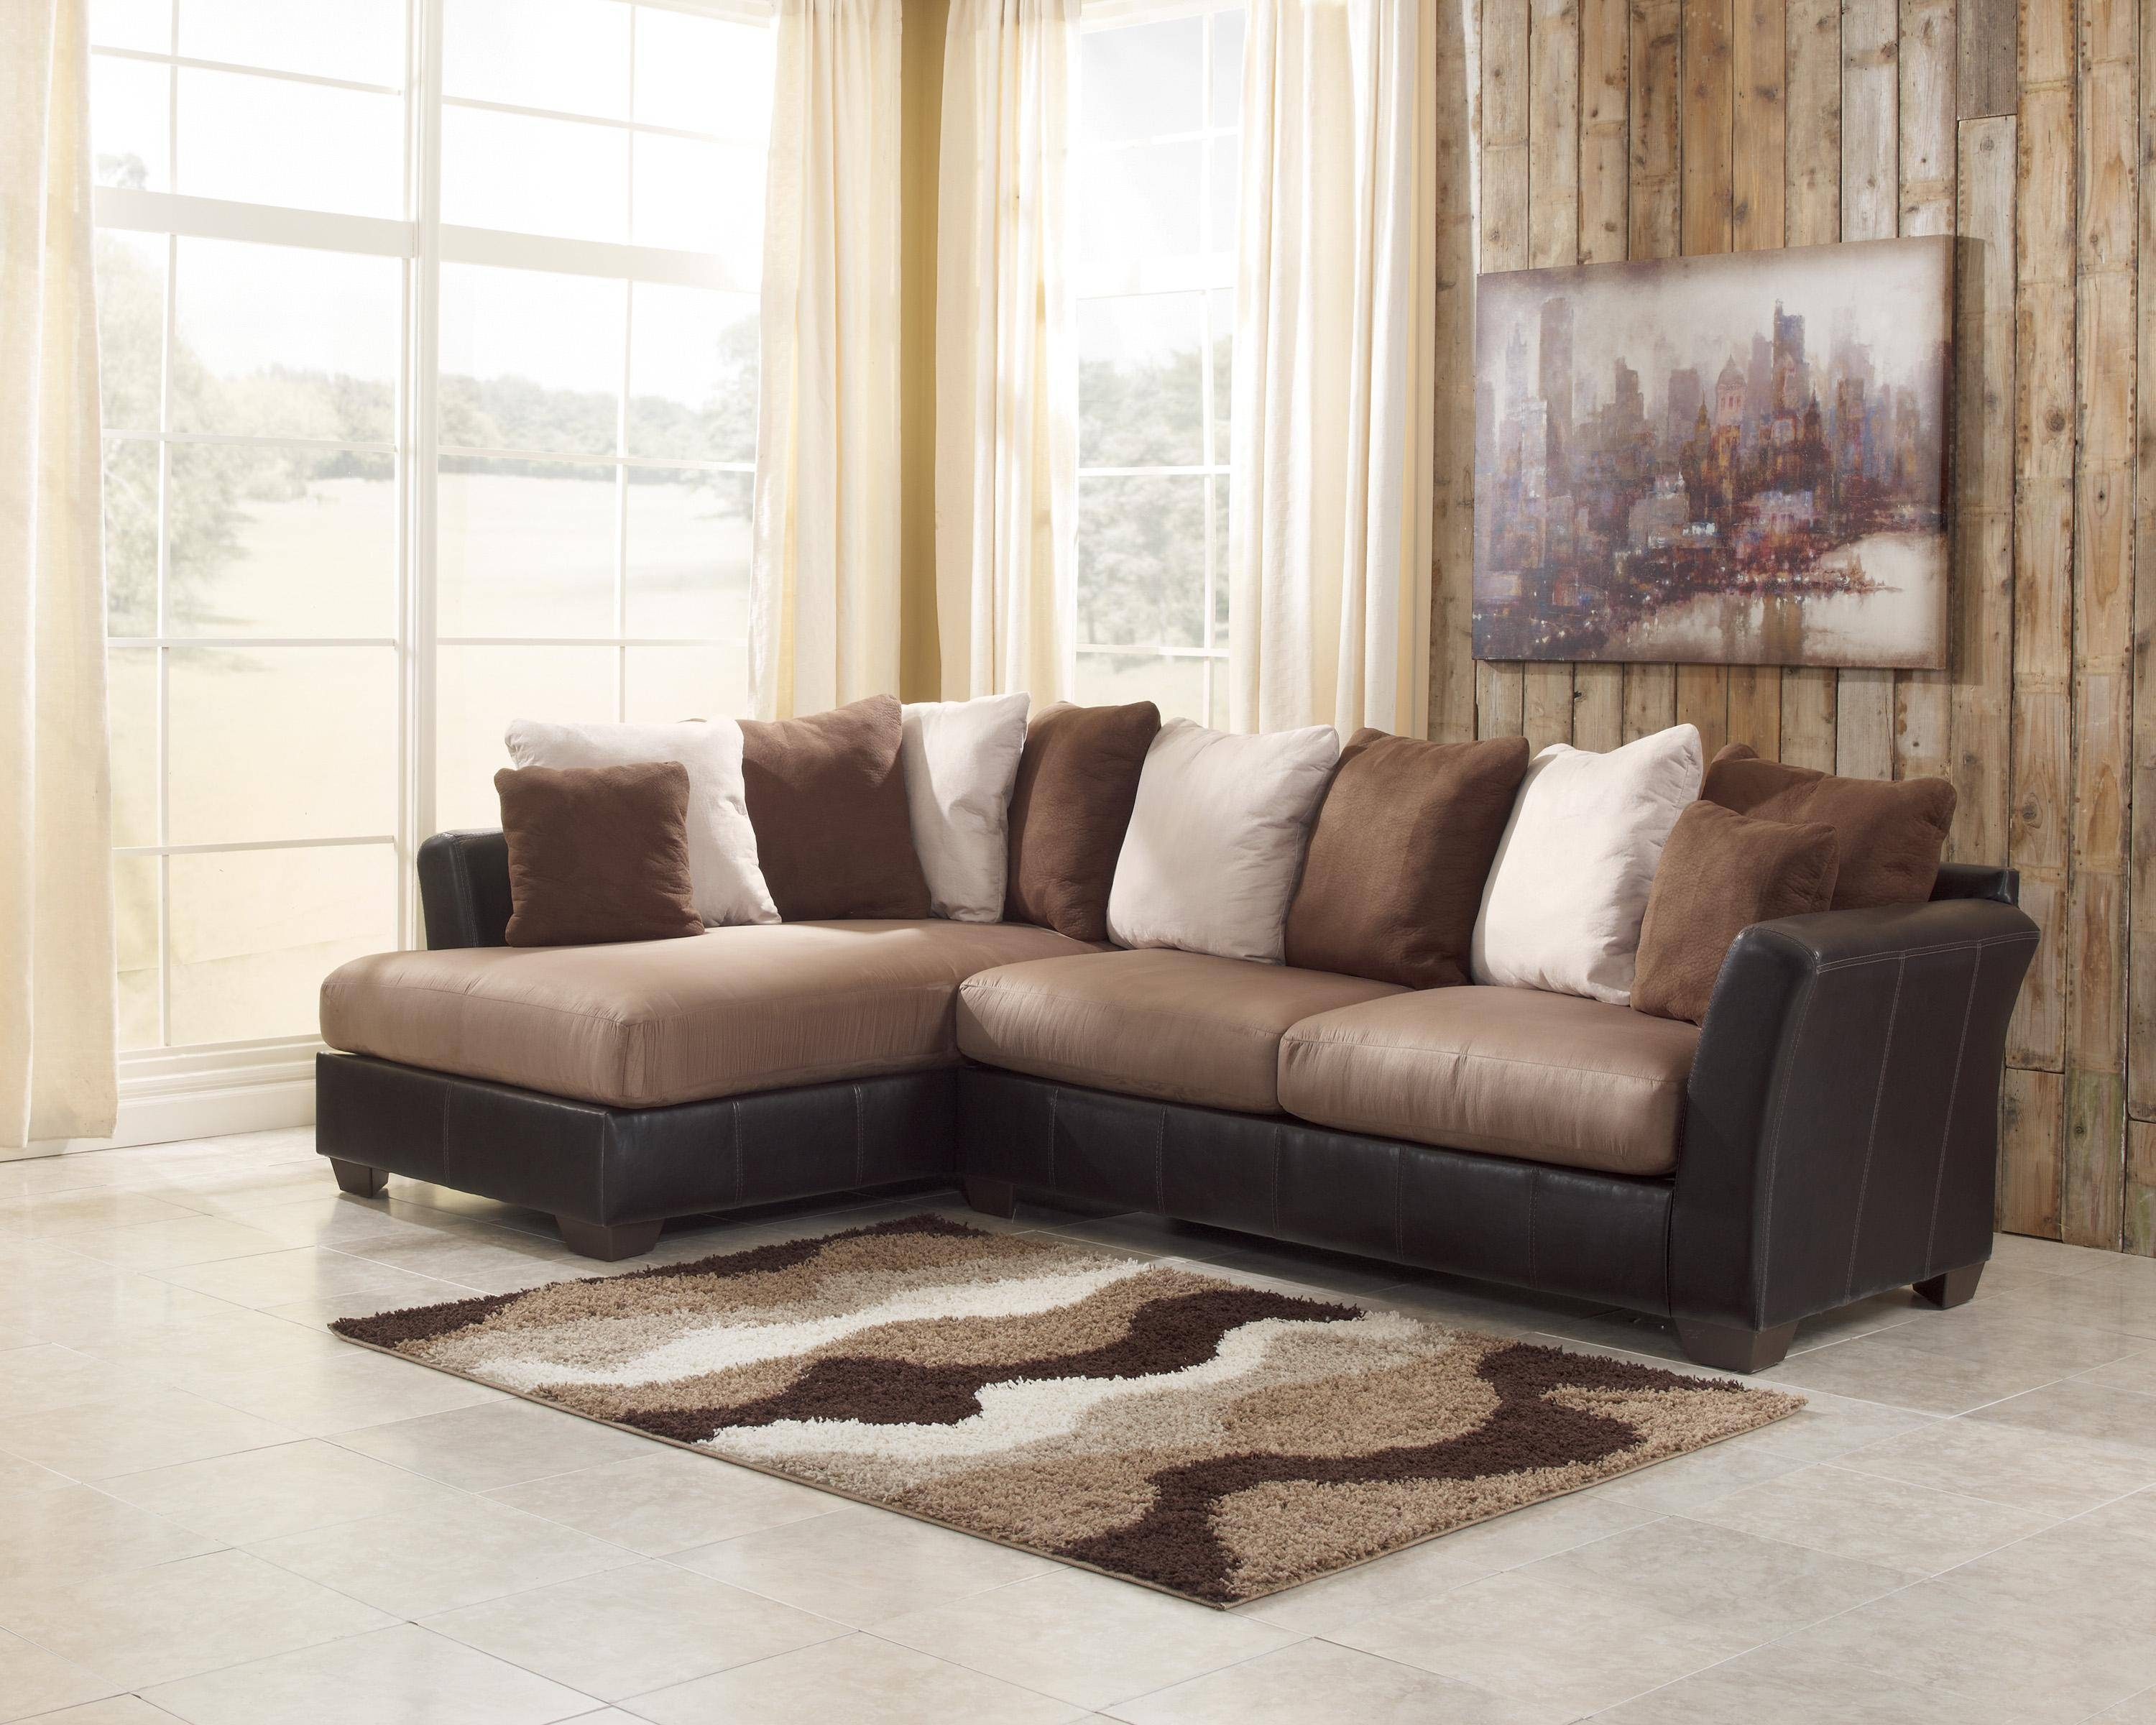 Inspirational 2 Piece Sectional Sofa 90 Living Room Sofa Ideas inside 2 Piece Sofas (Image 8 of 15)